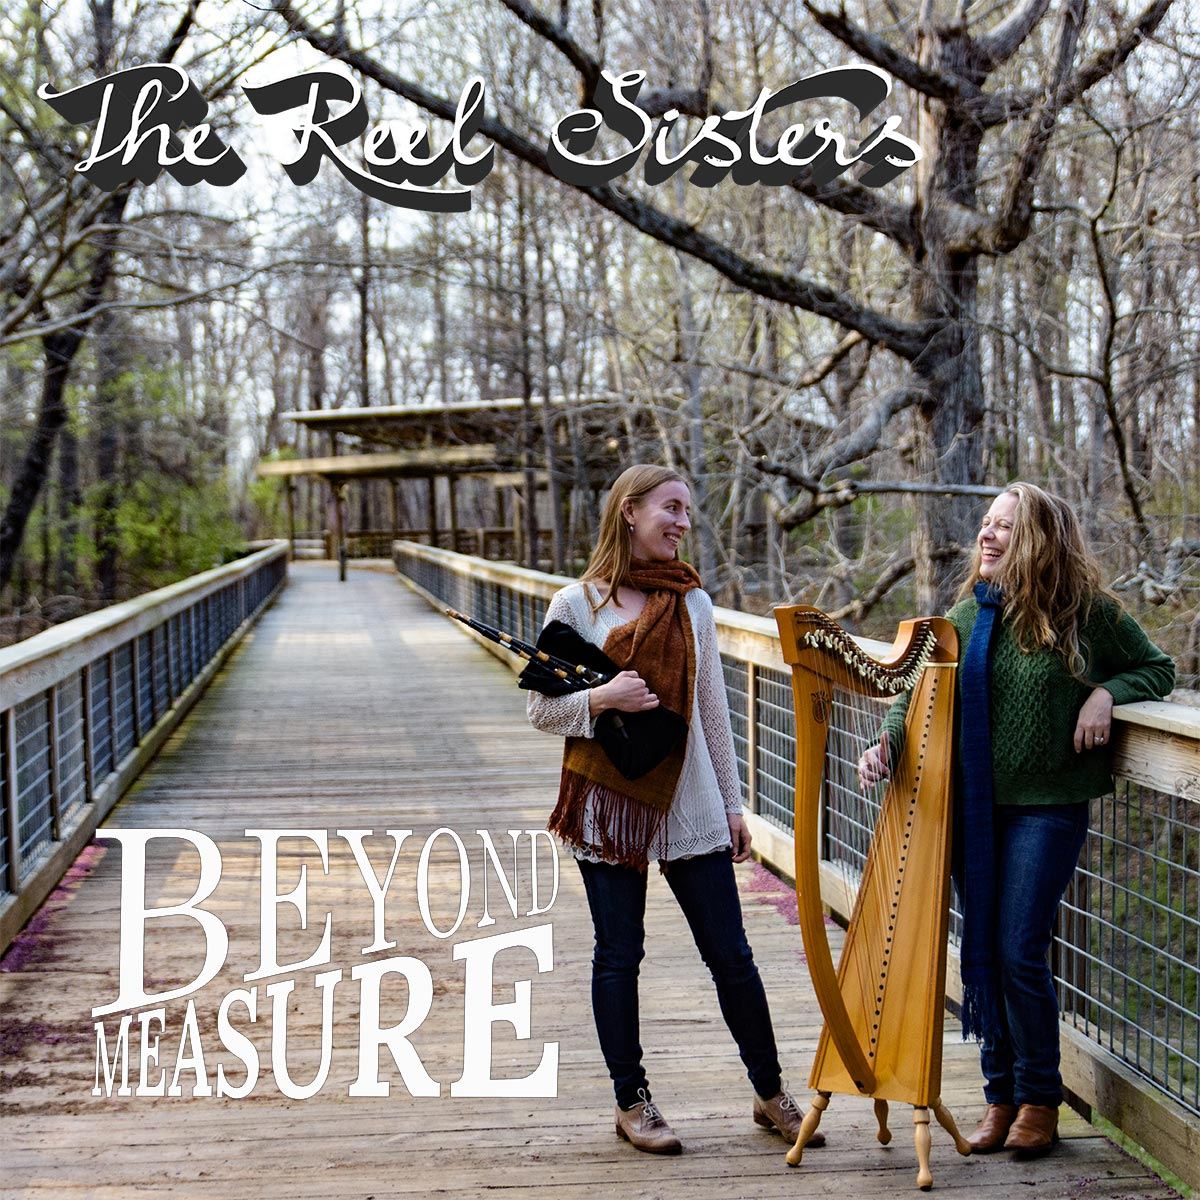 Beyond Measure CD cover. It says The Reel Sisters, Beyond Measure and has an image of Rosalind and Kelly on a bridge with their instruments.